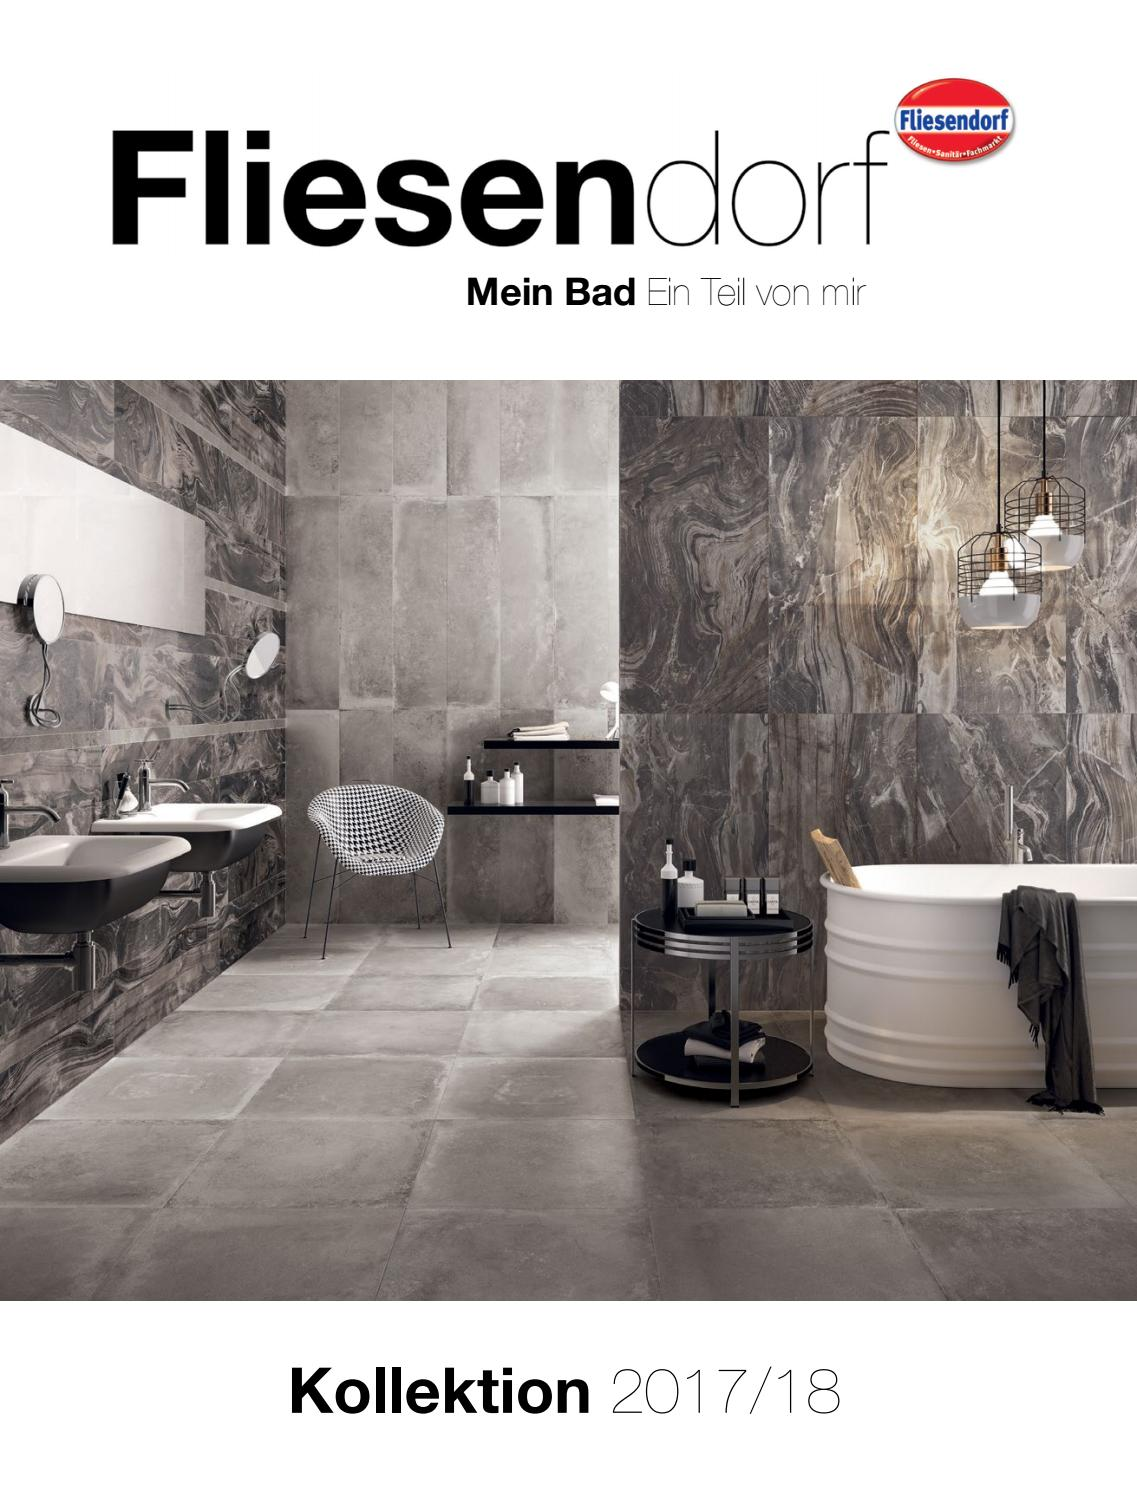 Fliesen Badezimmer Toom Fliesendorf Kollektion 2017 2018 By Fliesendorf At Issuu